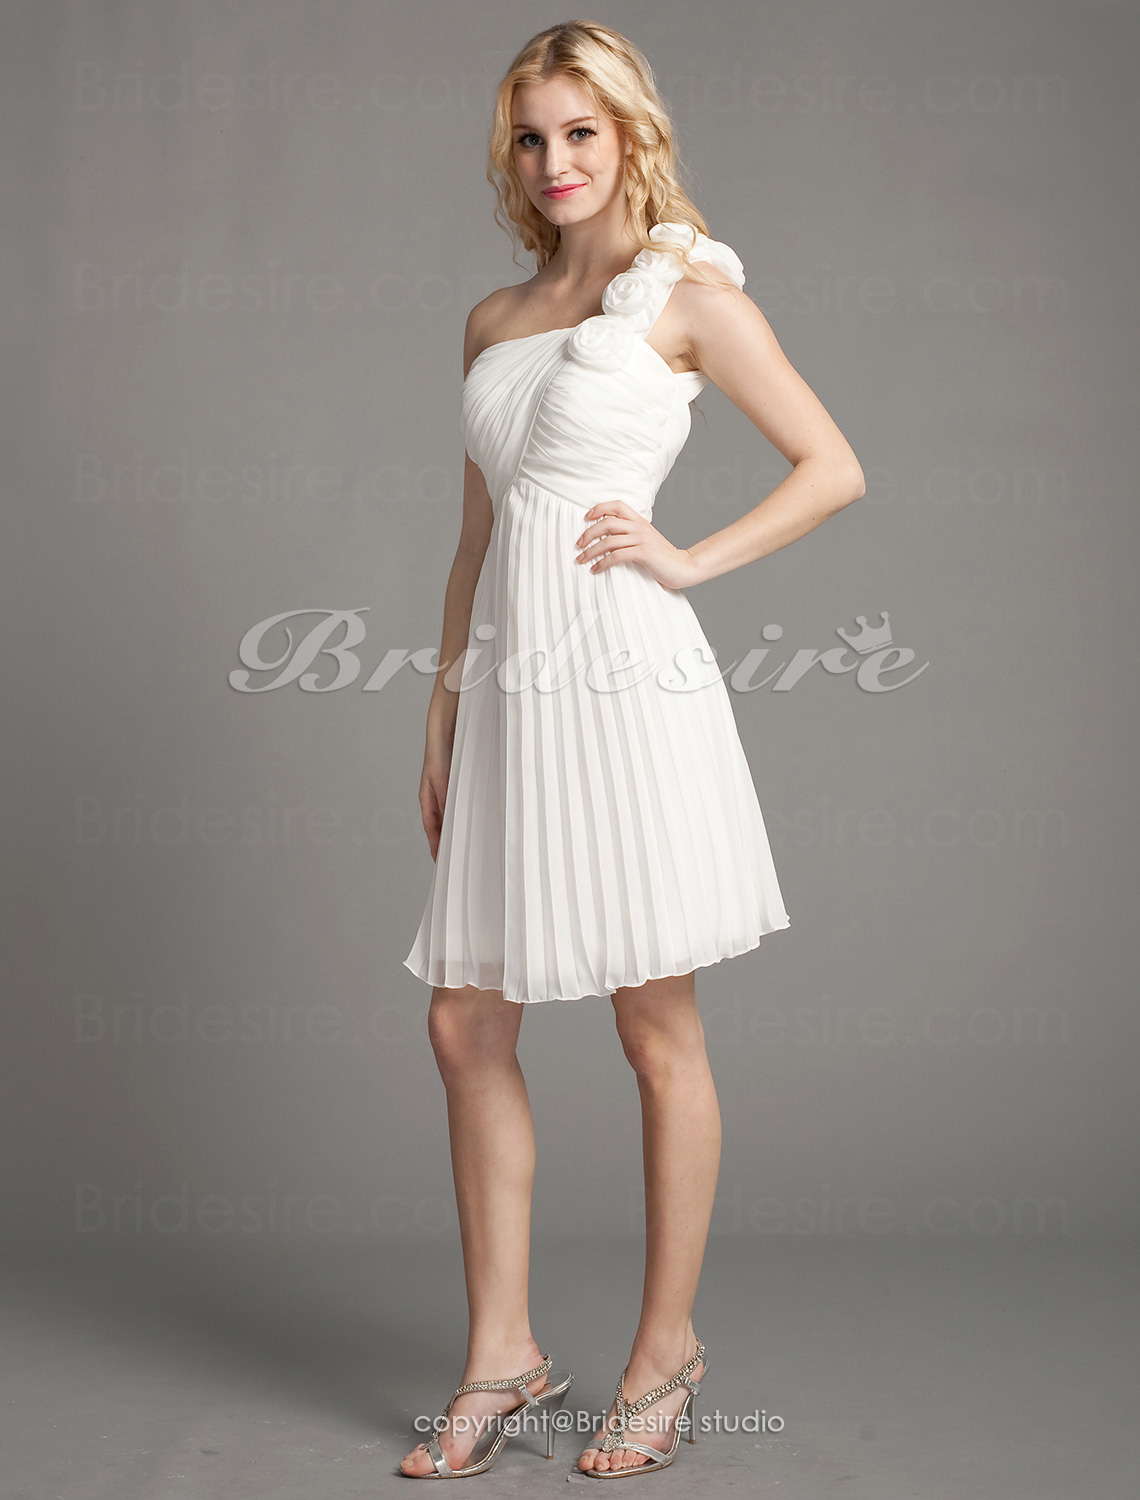 A-line Chiffon Knee-length One Shoulder Cocktail Dress